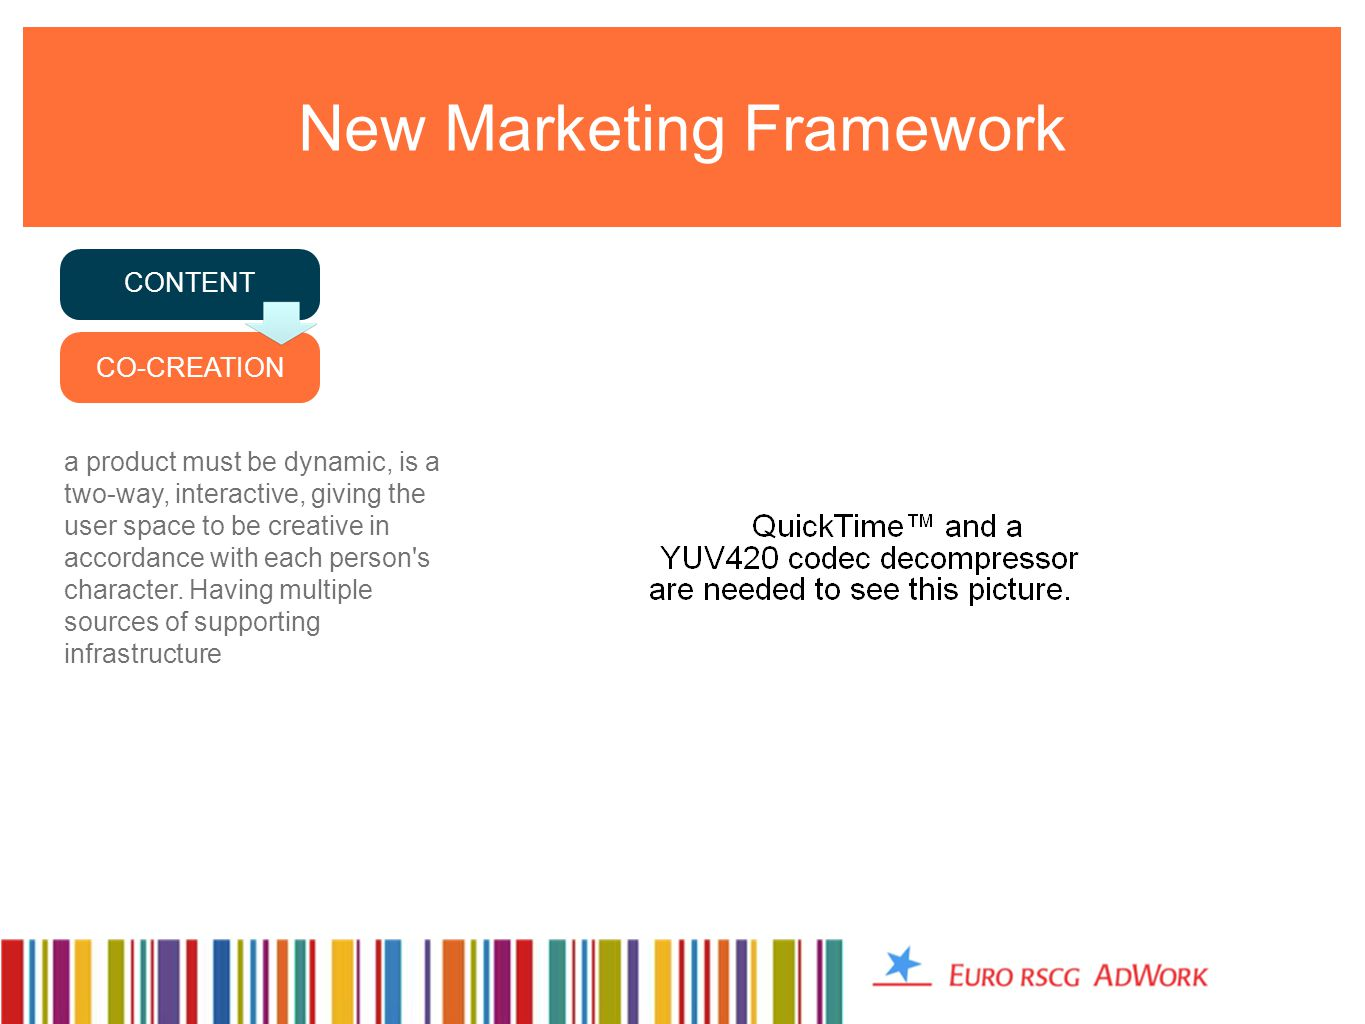 New Marketing Framework CONTENT CO-CREATION a product must be dynamic, is a two-way, interactive, giving the user space to be creative in accordance with each person s character.